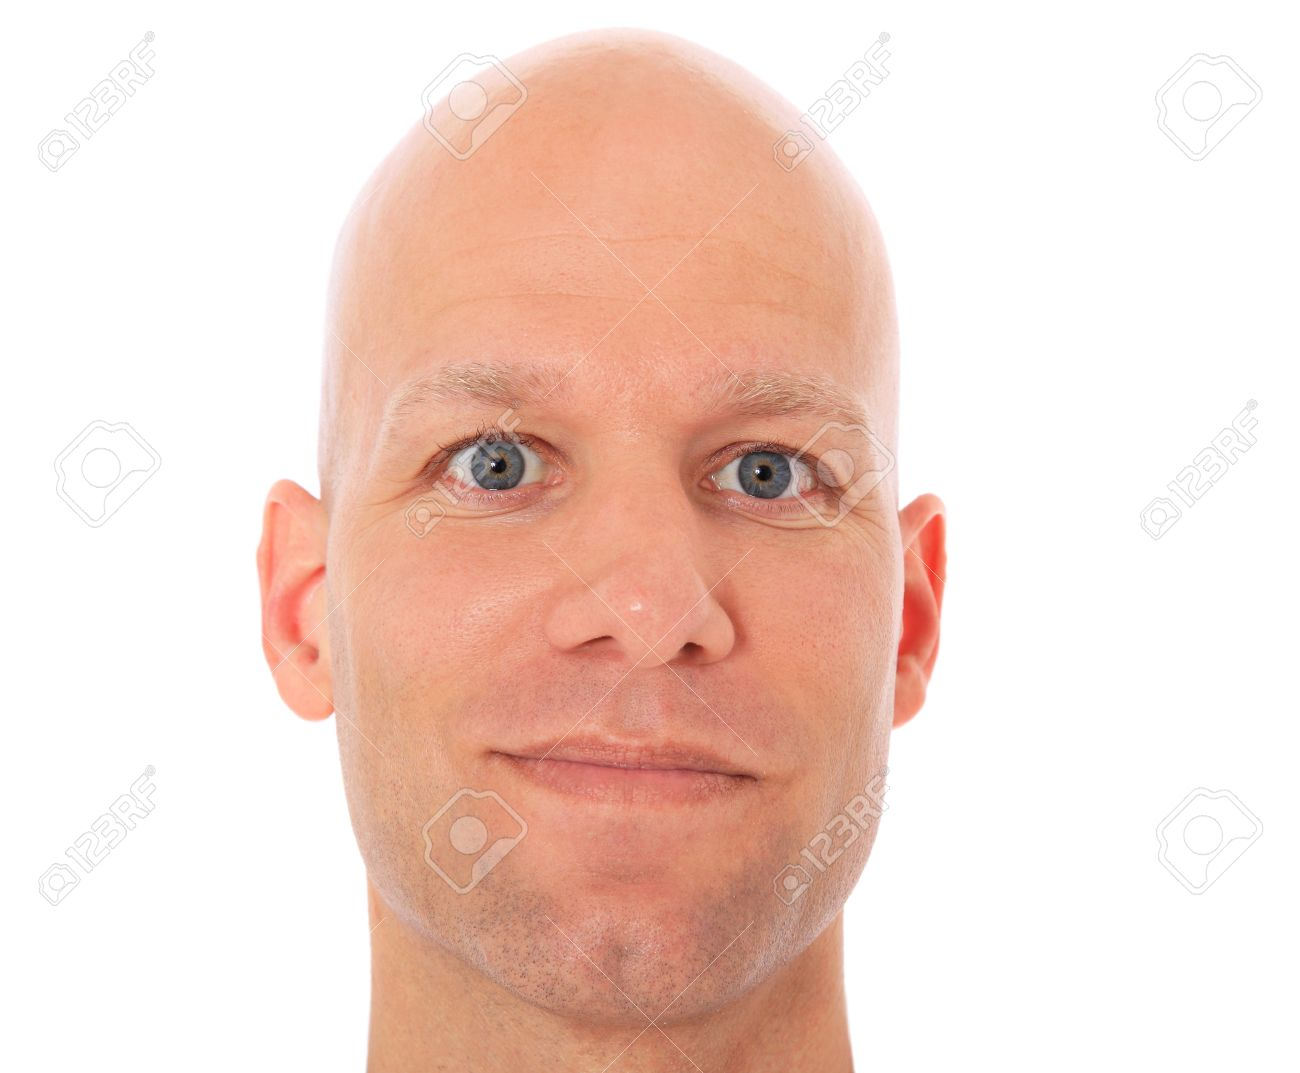 11544938-head-of-a-bald-man-all-on-white-background-.jpg